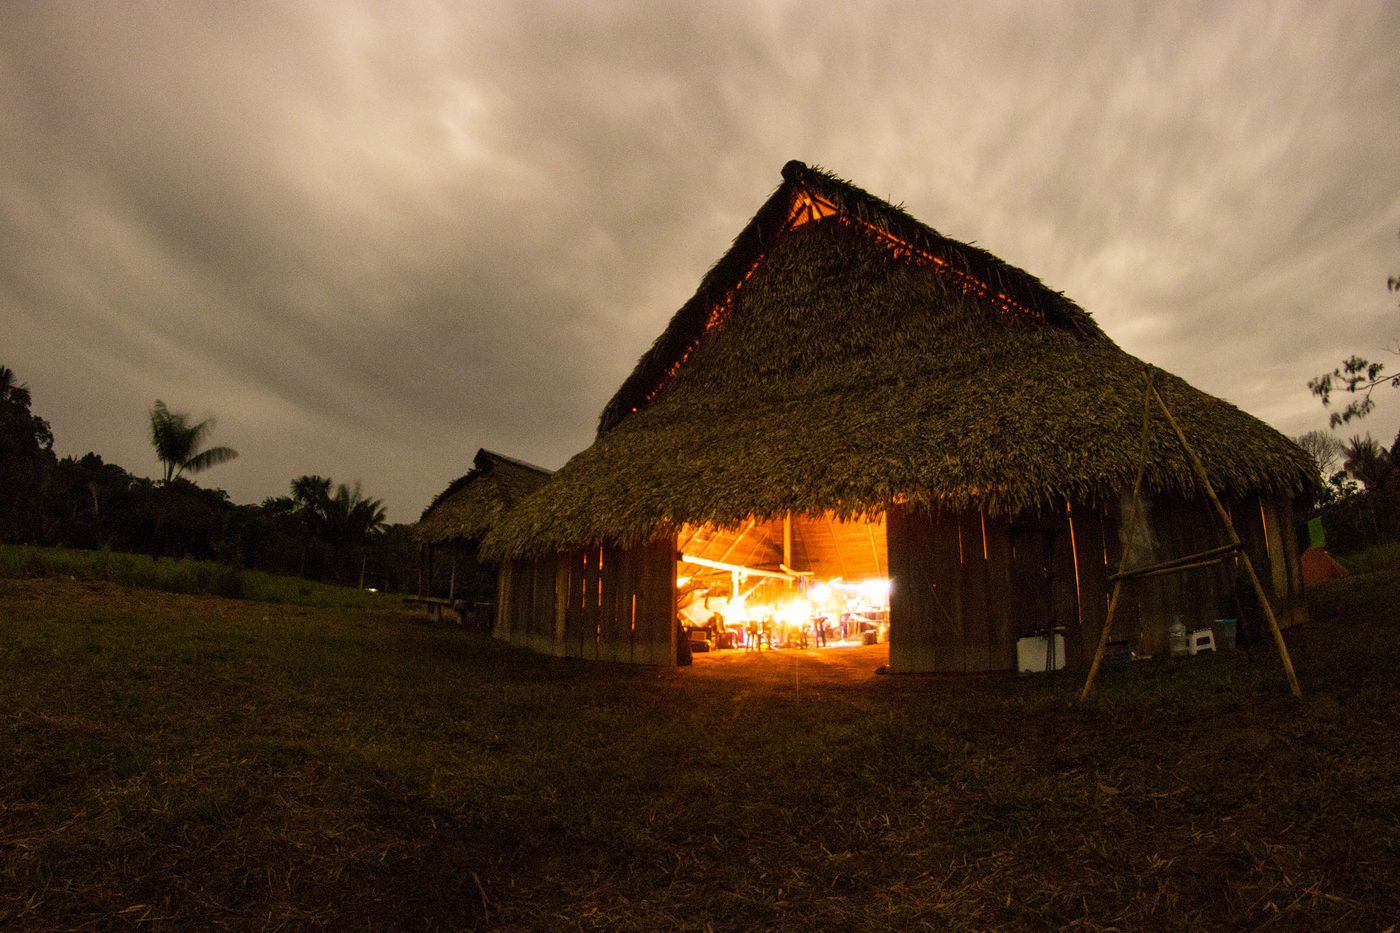 A wooden building with pointed thatched roof at nighttime. The warm, orange glow of candlelight is visible inside the building, through its wide-open front doors. There are palm trees behind the building.